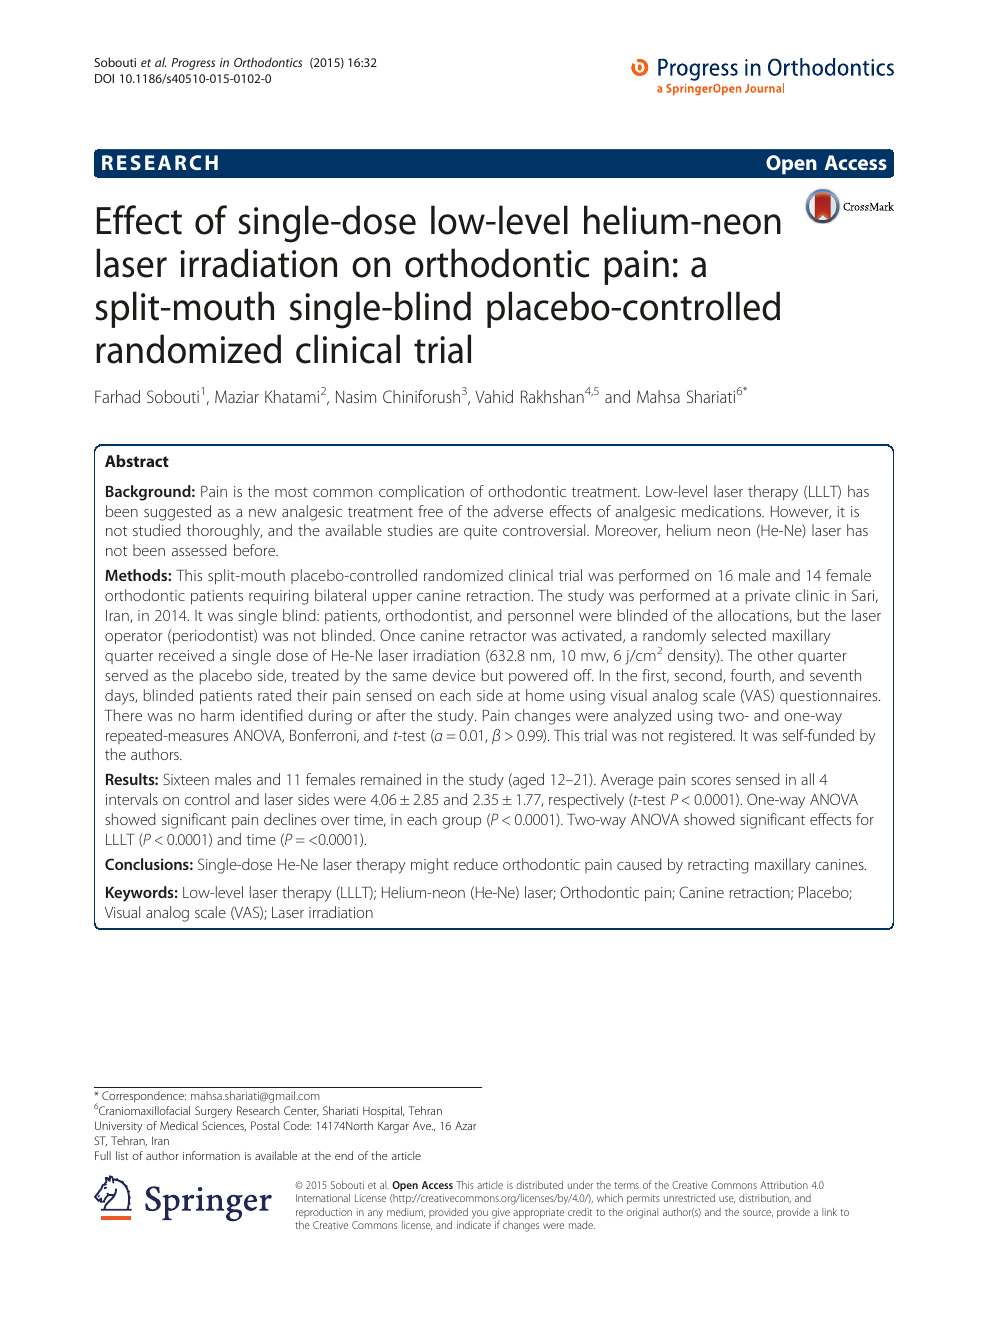 Effect of single-dose low-level helium-neon laser